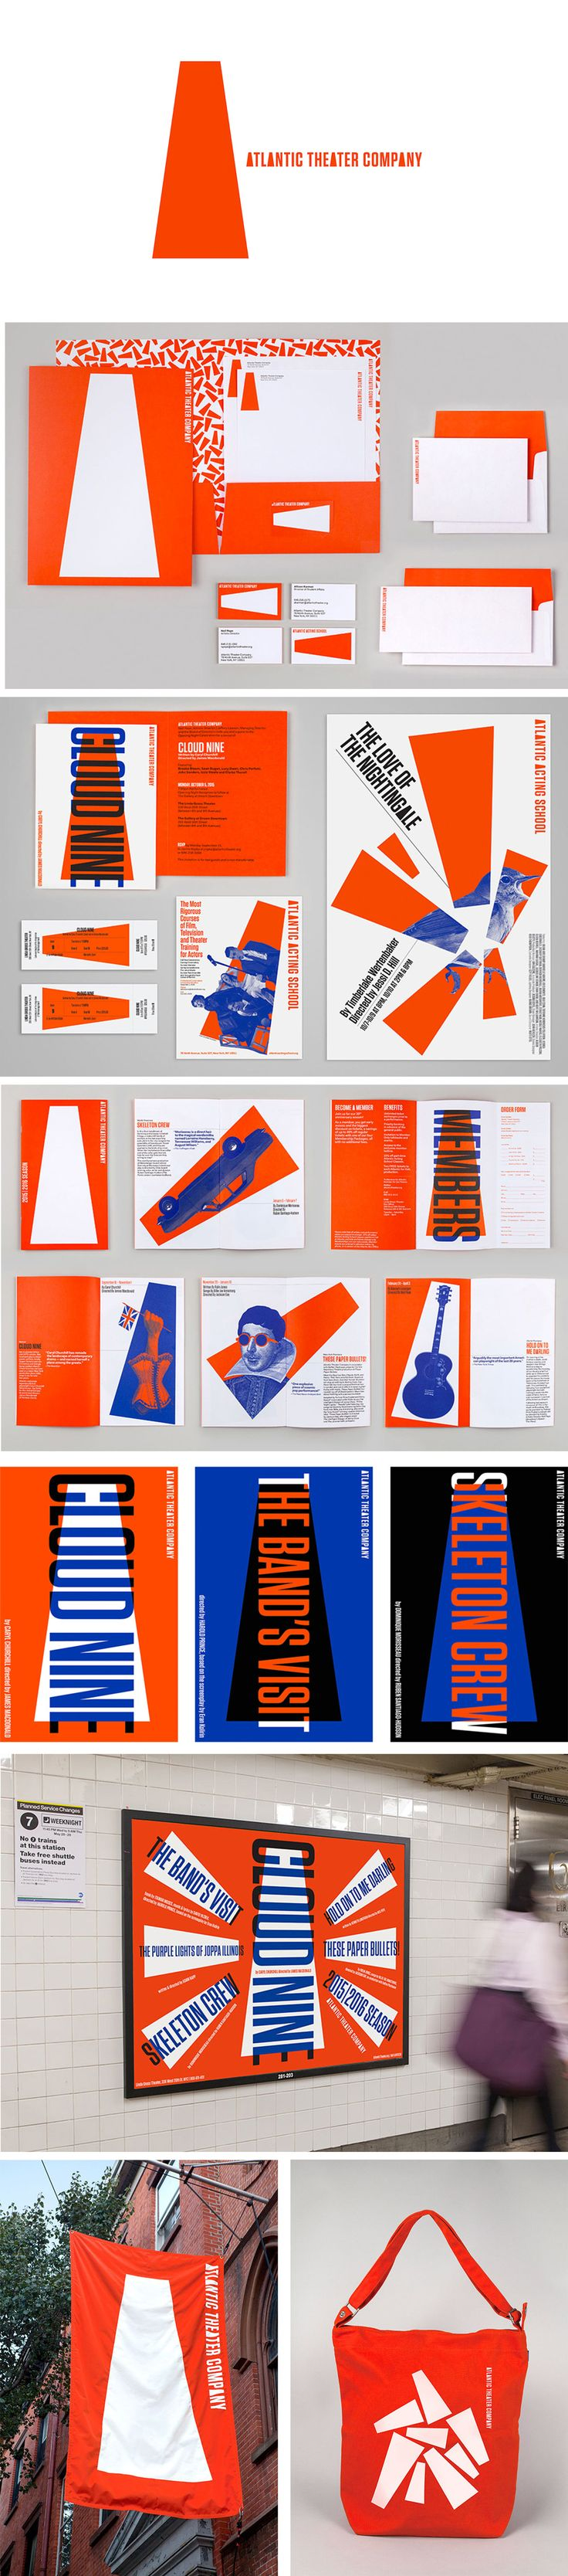 More corporate-designs are collected on: https://pinterest.com/rothenhaeusler/best-of-corporate-design/ · Client: Atlantic Theater Company · Agency: Pentagram #branding #identity #corporatedesign · Source: http://www.underconsideration.com/brandnew/archives/new_logo_and_identity_for_atlantic_theater_company_by_pentagram.php